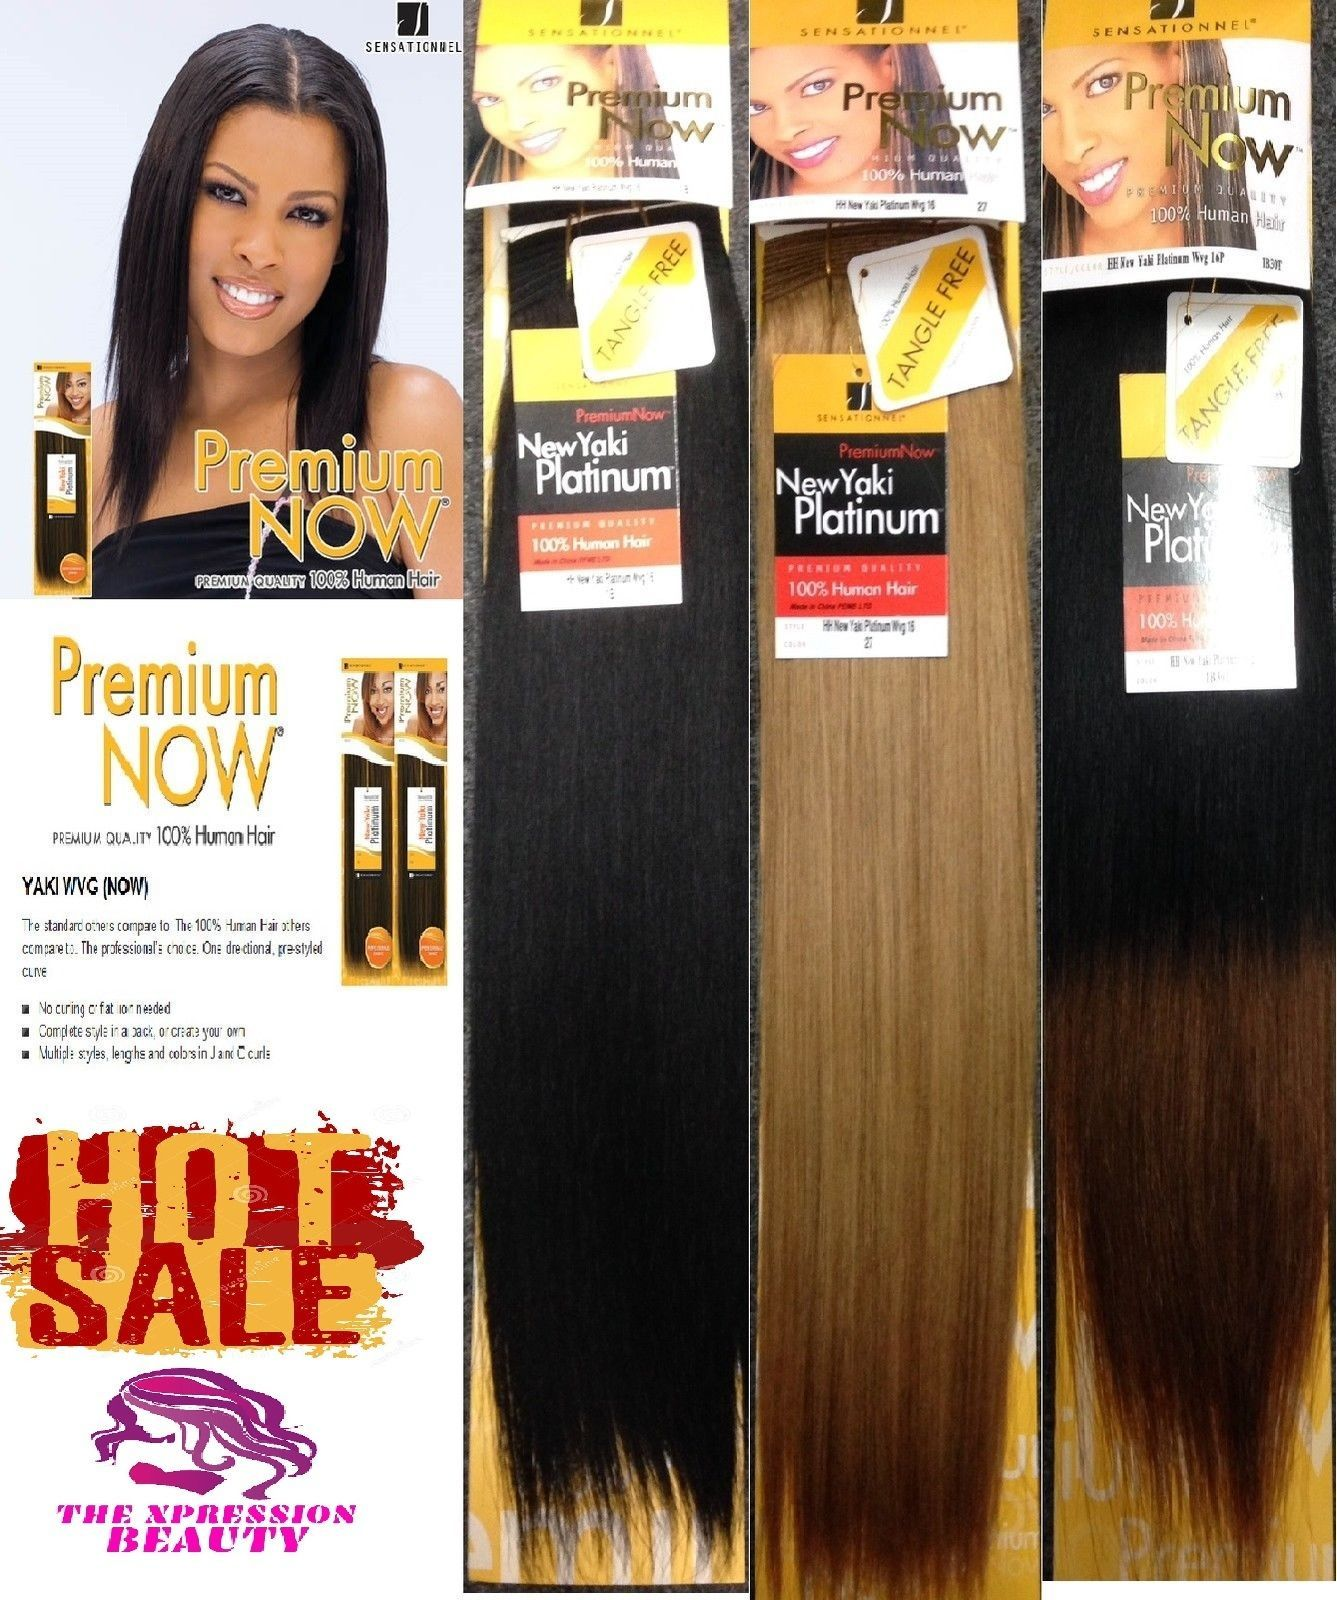 Sensationnel Premium Now Yaki Platinum Human Hair Weave 14inch The Xpression